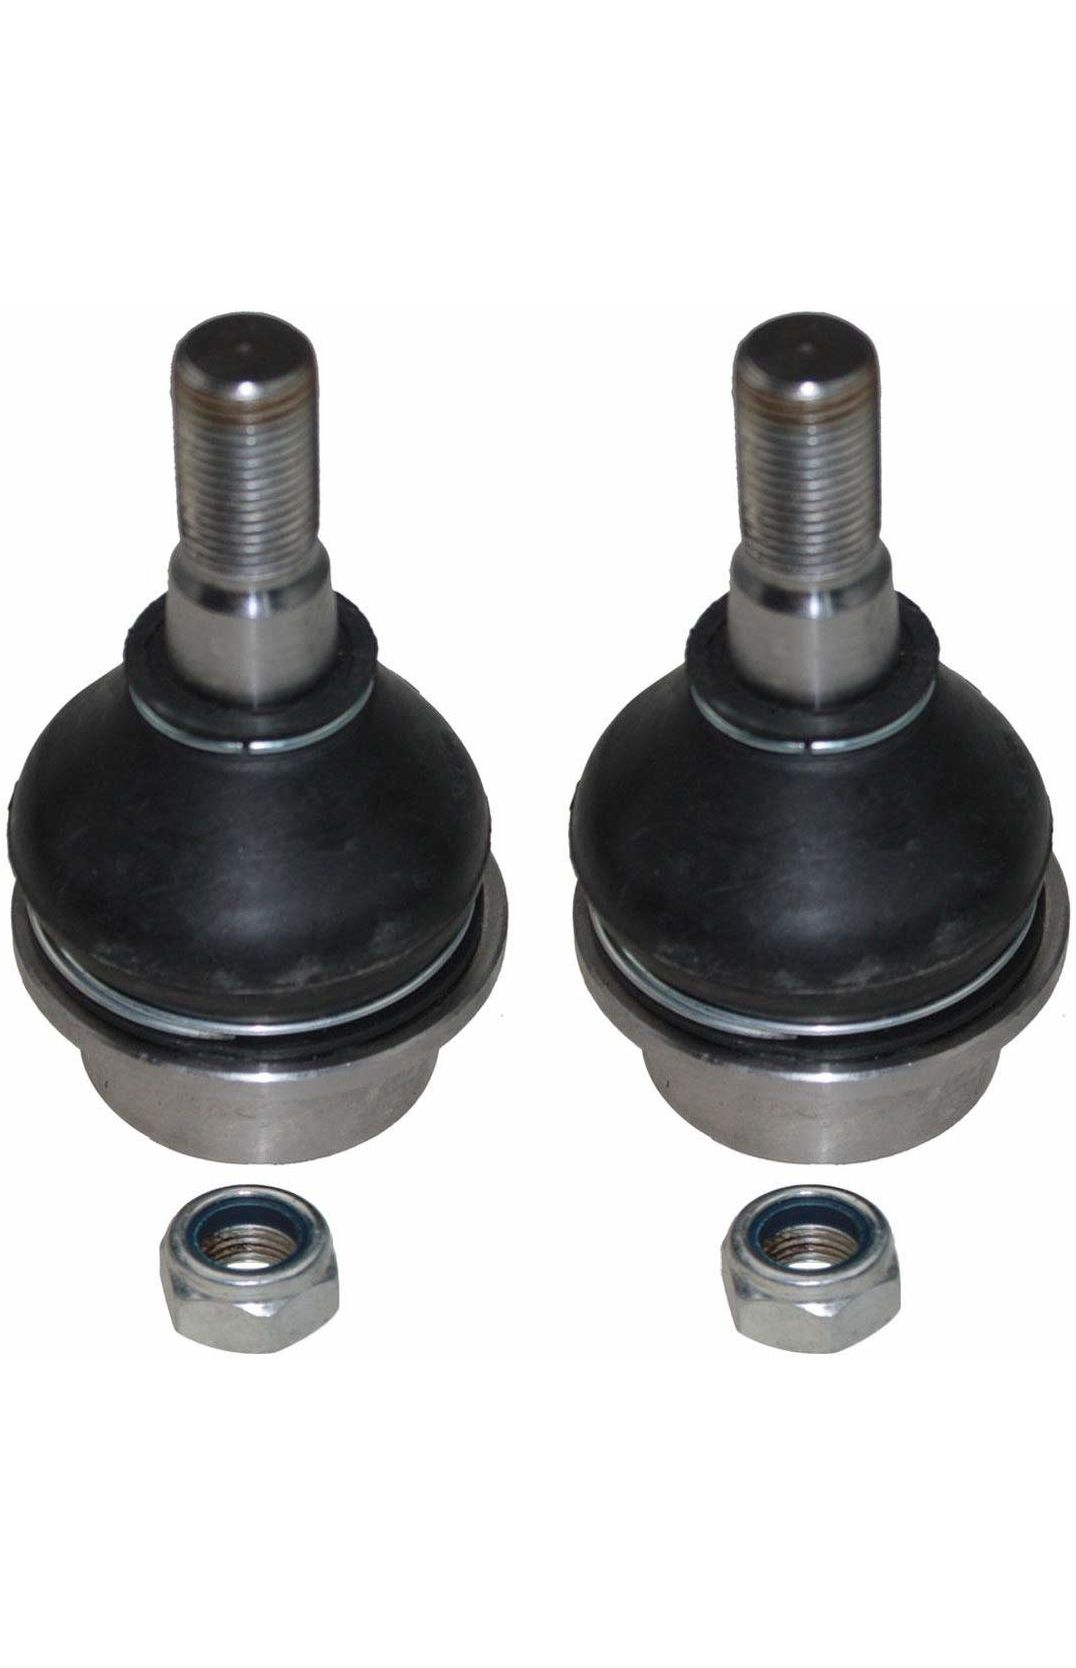 2005 Dodge Ram 1500 Ball Joints : dodge, joints, Suspension, Steering, System, (18-Pcs-Set), Front, Control, W/Bushing, Joint, Pinion, Boots, Fellows, 2002-2005, Dodge, ChristOne, AutoParts